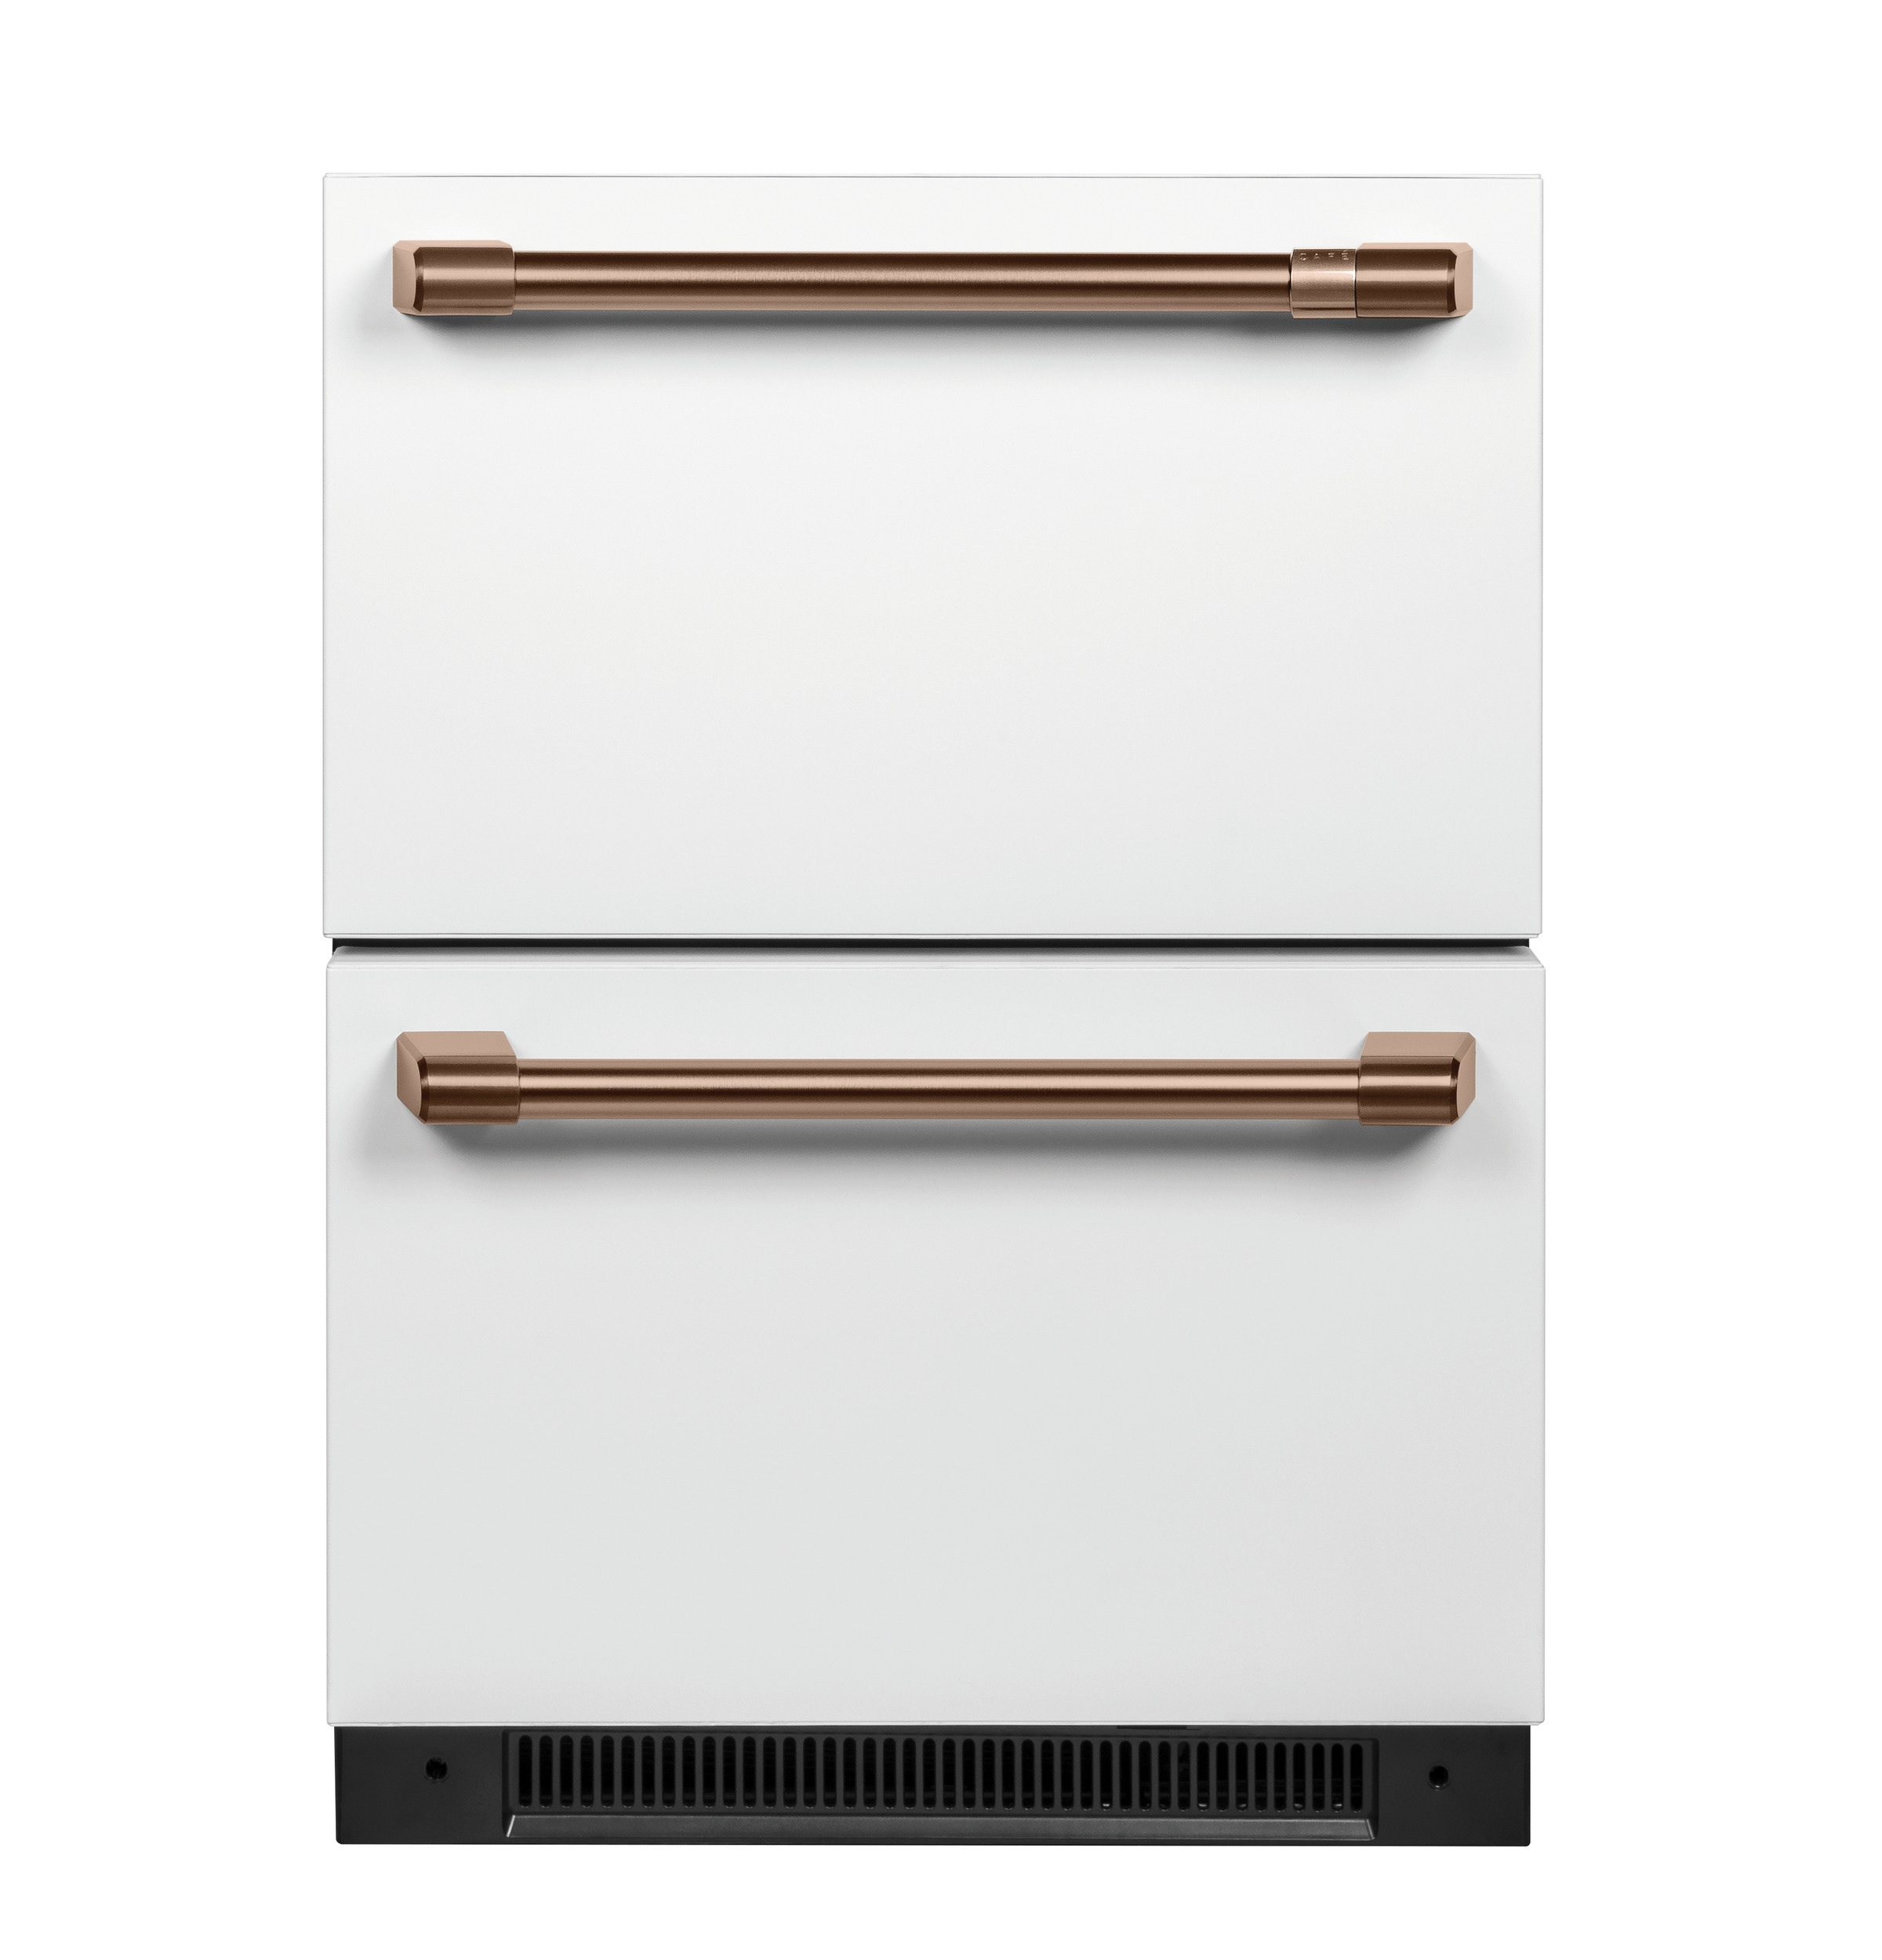 Model: CDE06RP4NW2 | Cafe Café™ 5.7 Cu. Ft. Built-In Dual-Drawer Refrigerator